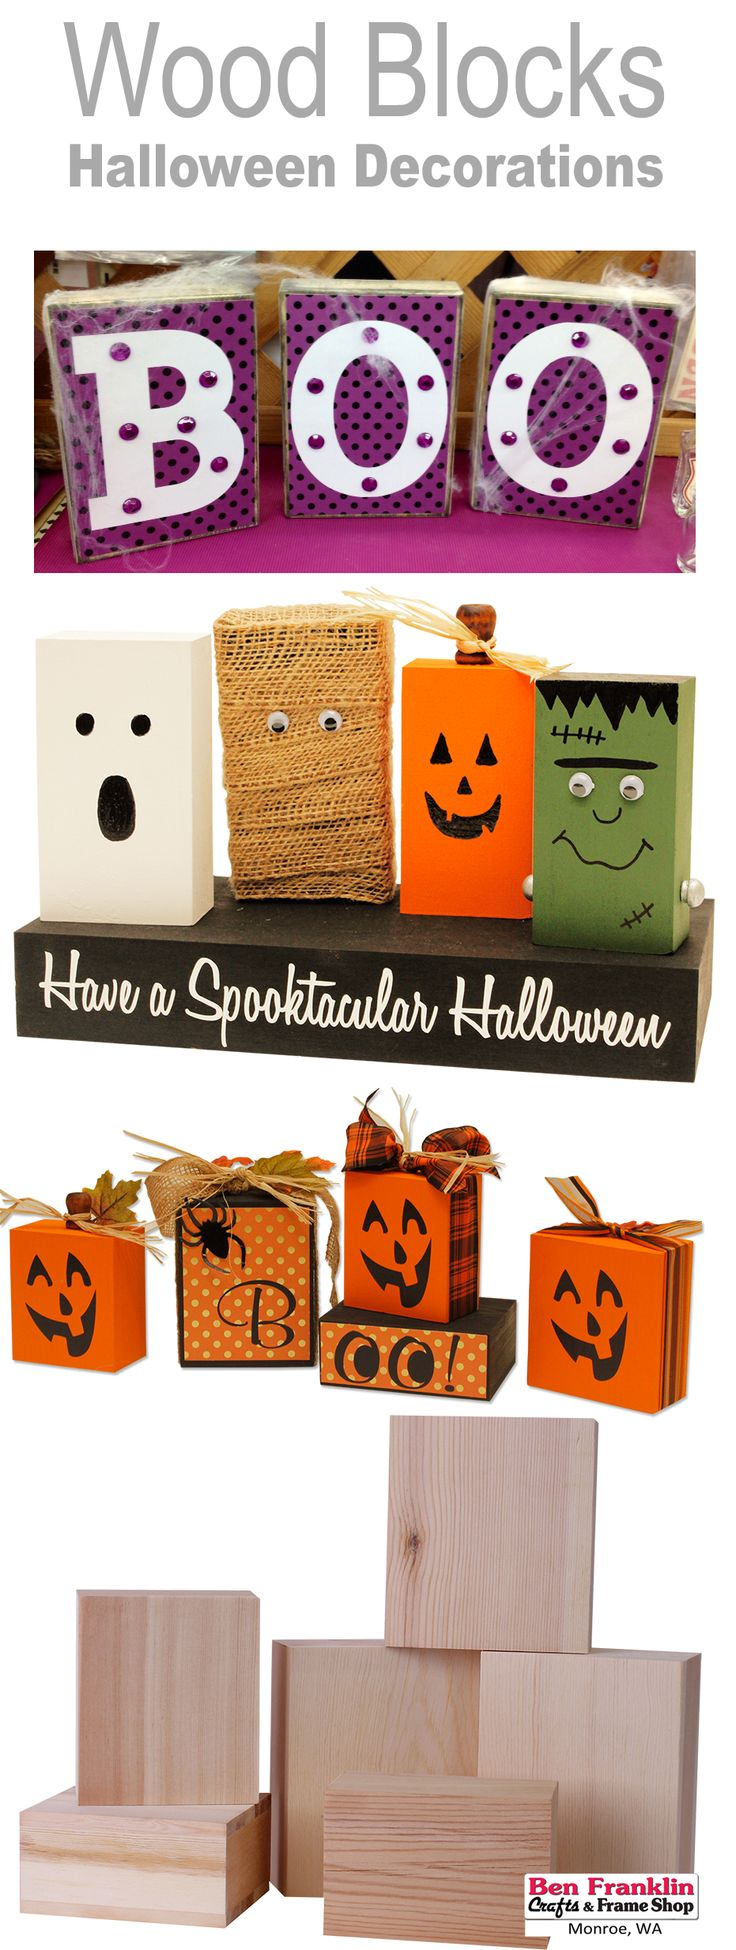 3 DIY HALLOWEEN BLOCK DECORATIONS  Wonder what to do with unfinished wood blocks? We have 3 DIY projects on our blog: https://benfranklincraftsmonroe.blogspot.com/2016/10/wood-blocks-vinyl-halloween-d